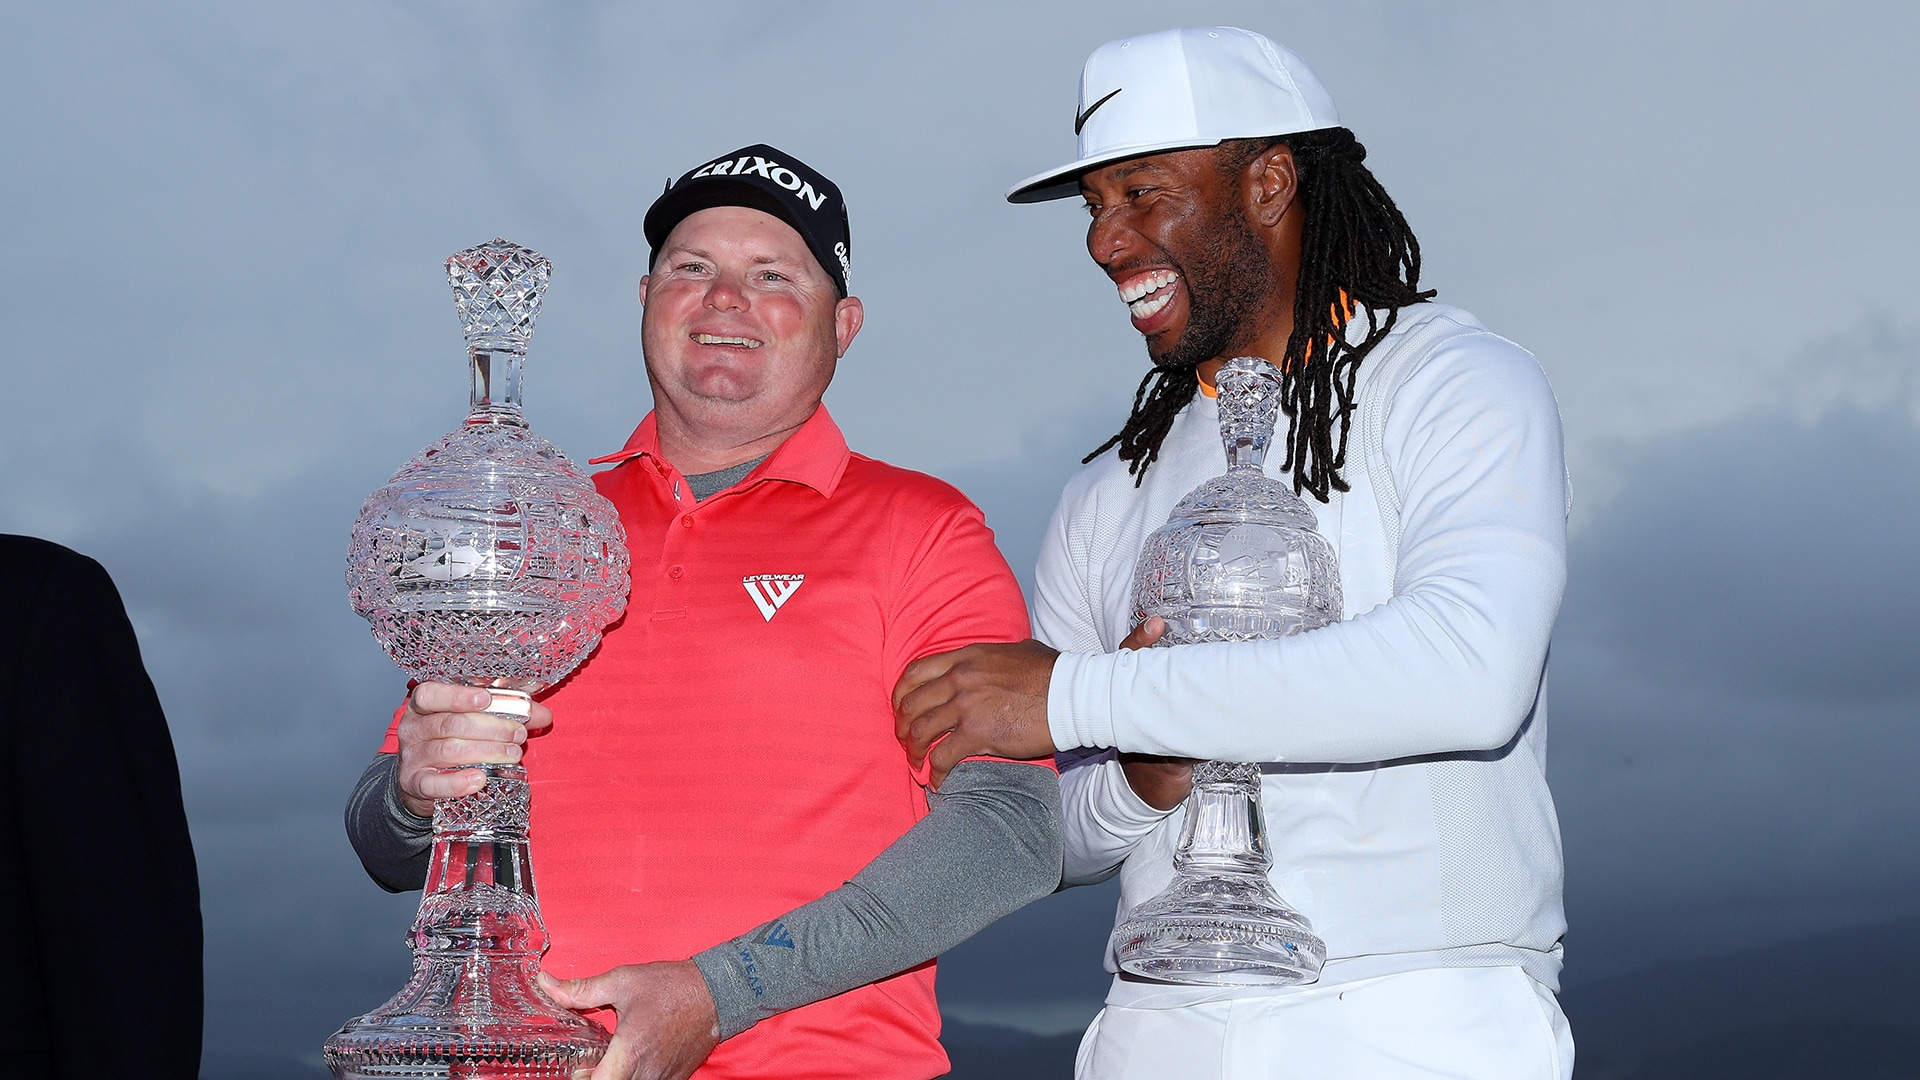 Ted Potter Jr. and Arizona Cardinals wide receiver Larry Fitzgerald at the 2018 AT&T Pebble Beach Pro-Am.